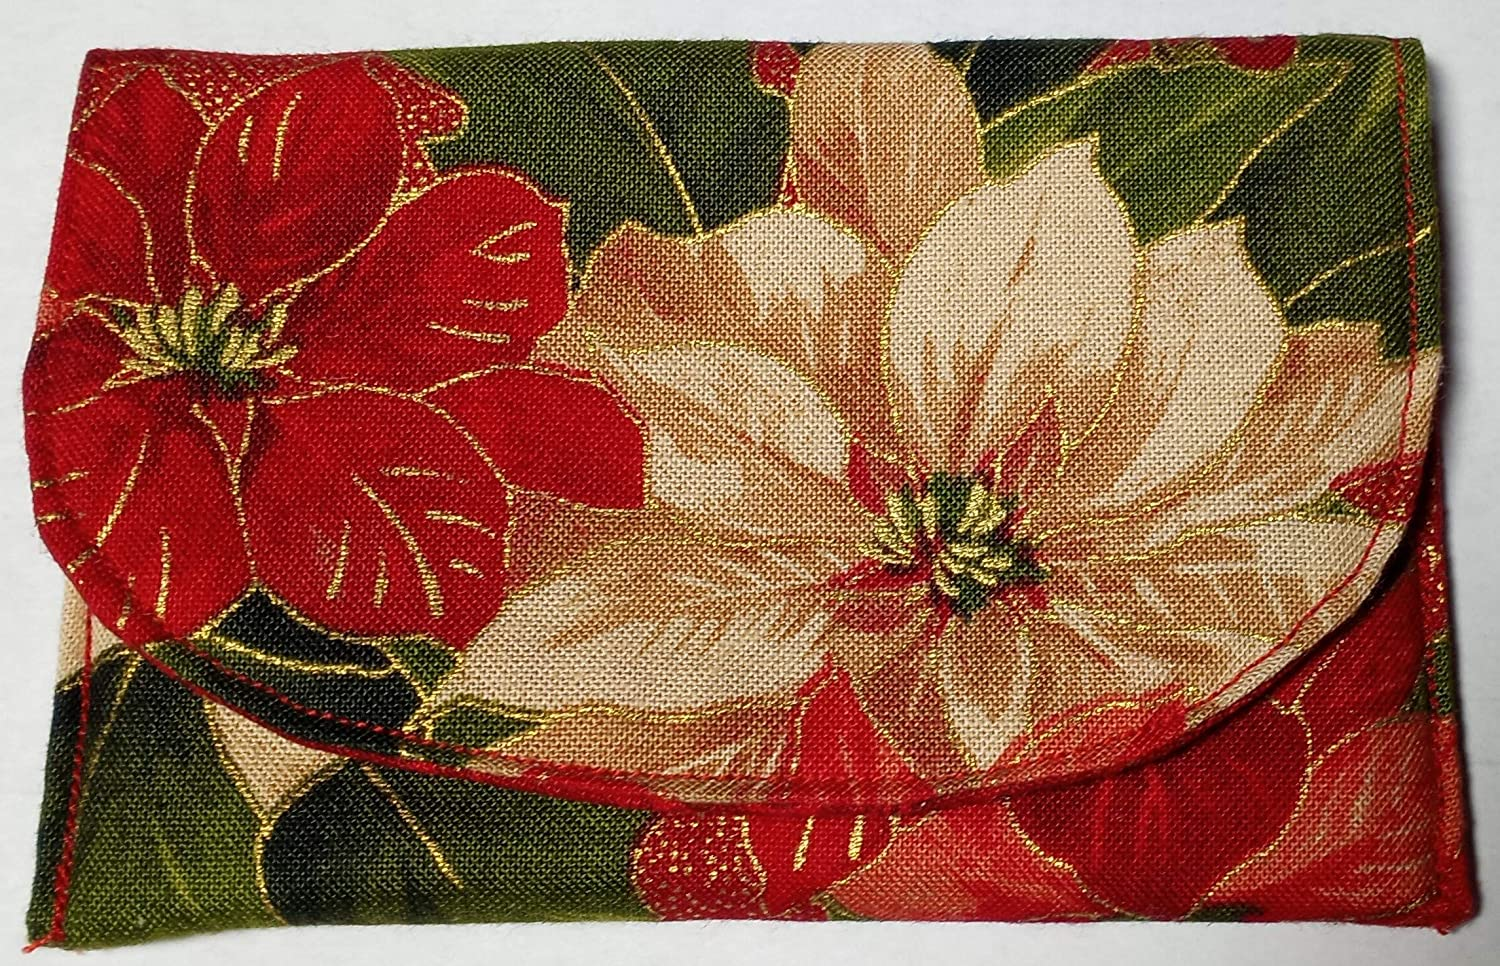 Business Cards Mini Wallet ID Great Gift. Gift Card Dollar Bills Holder Red Poinsettia Fabric Credit Card